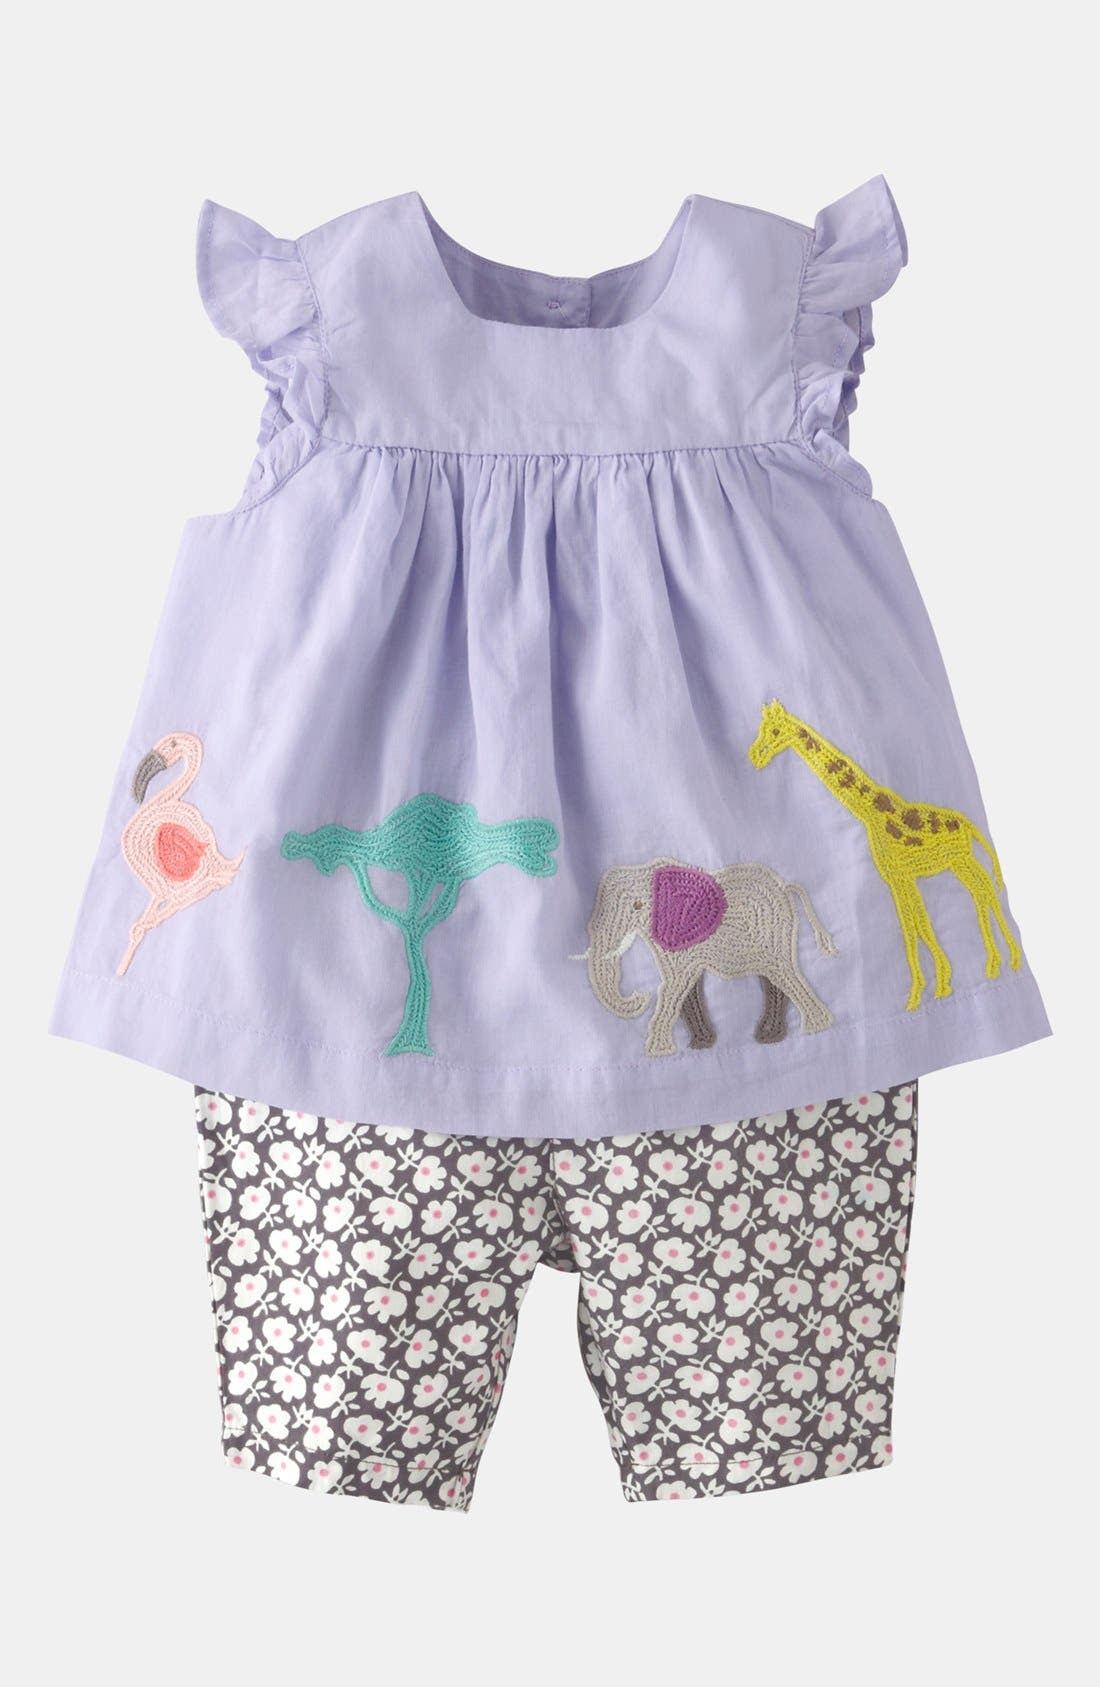 Main Image - Mini Boden 'Summer' Embroidered Top & Leggings (Baby)